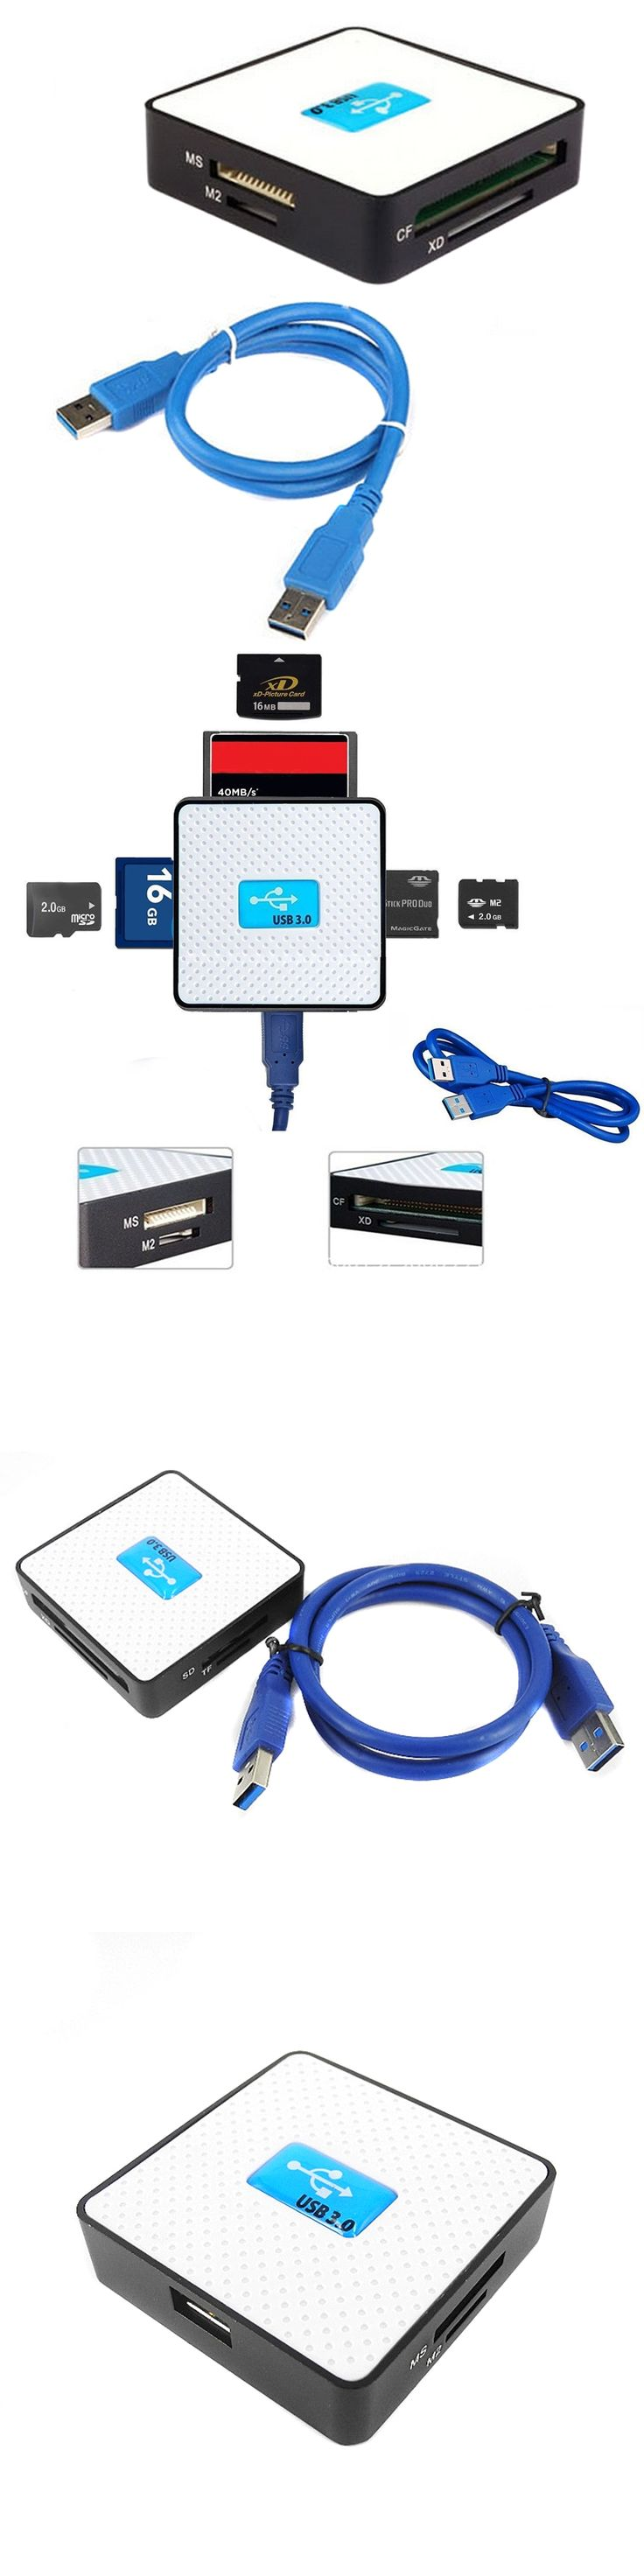 USB 3.0 All in 1 SD TF CF XD M2 MS Flash Memory Card Reader Adapter High Speed Memory Card Readers & Adapters